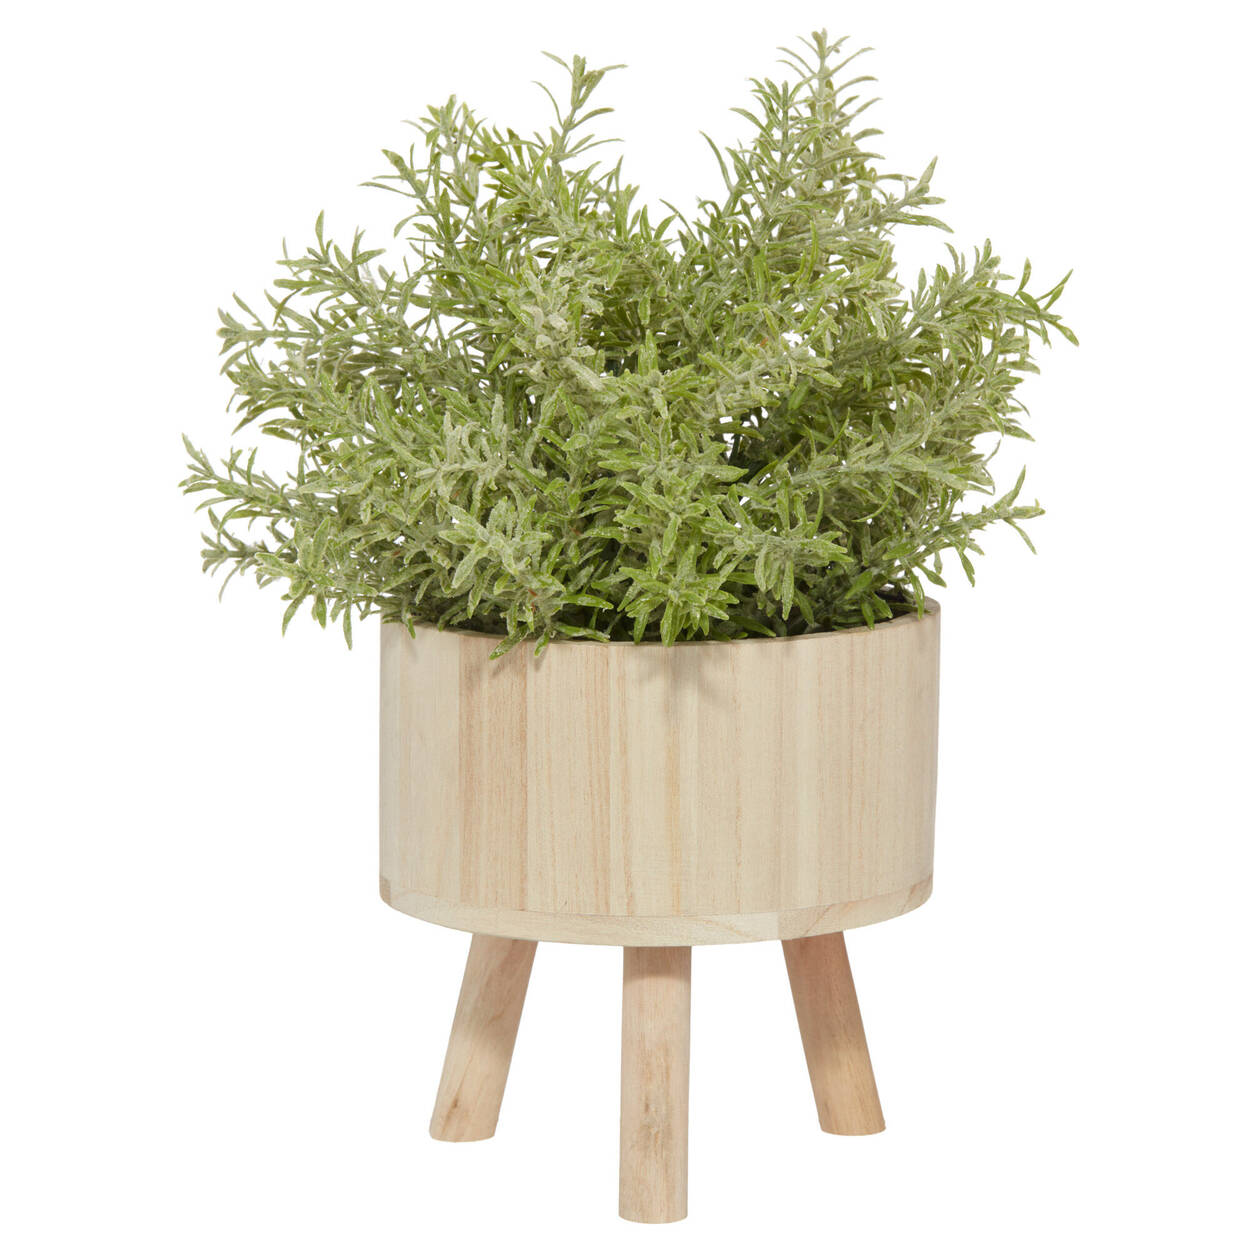 Grass Plant in Wooden Pot on Legs